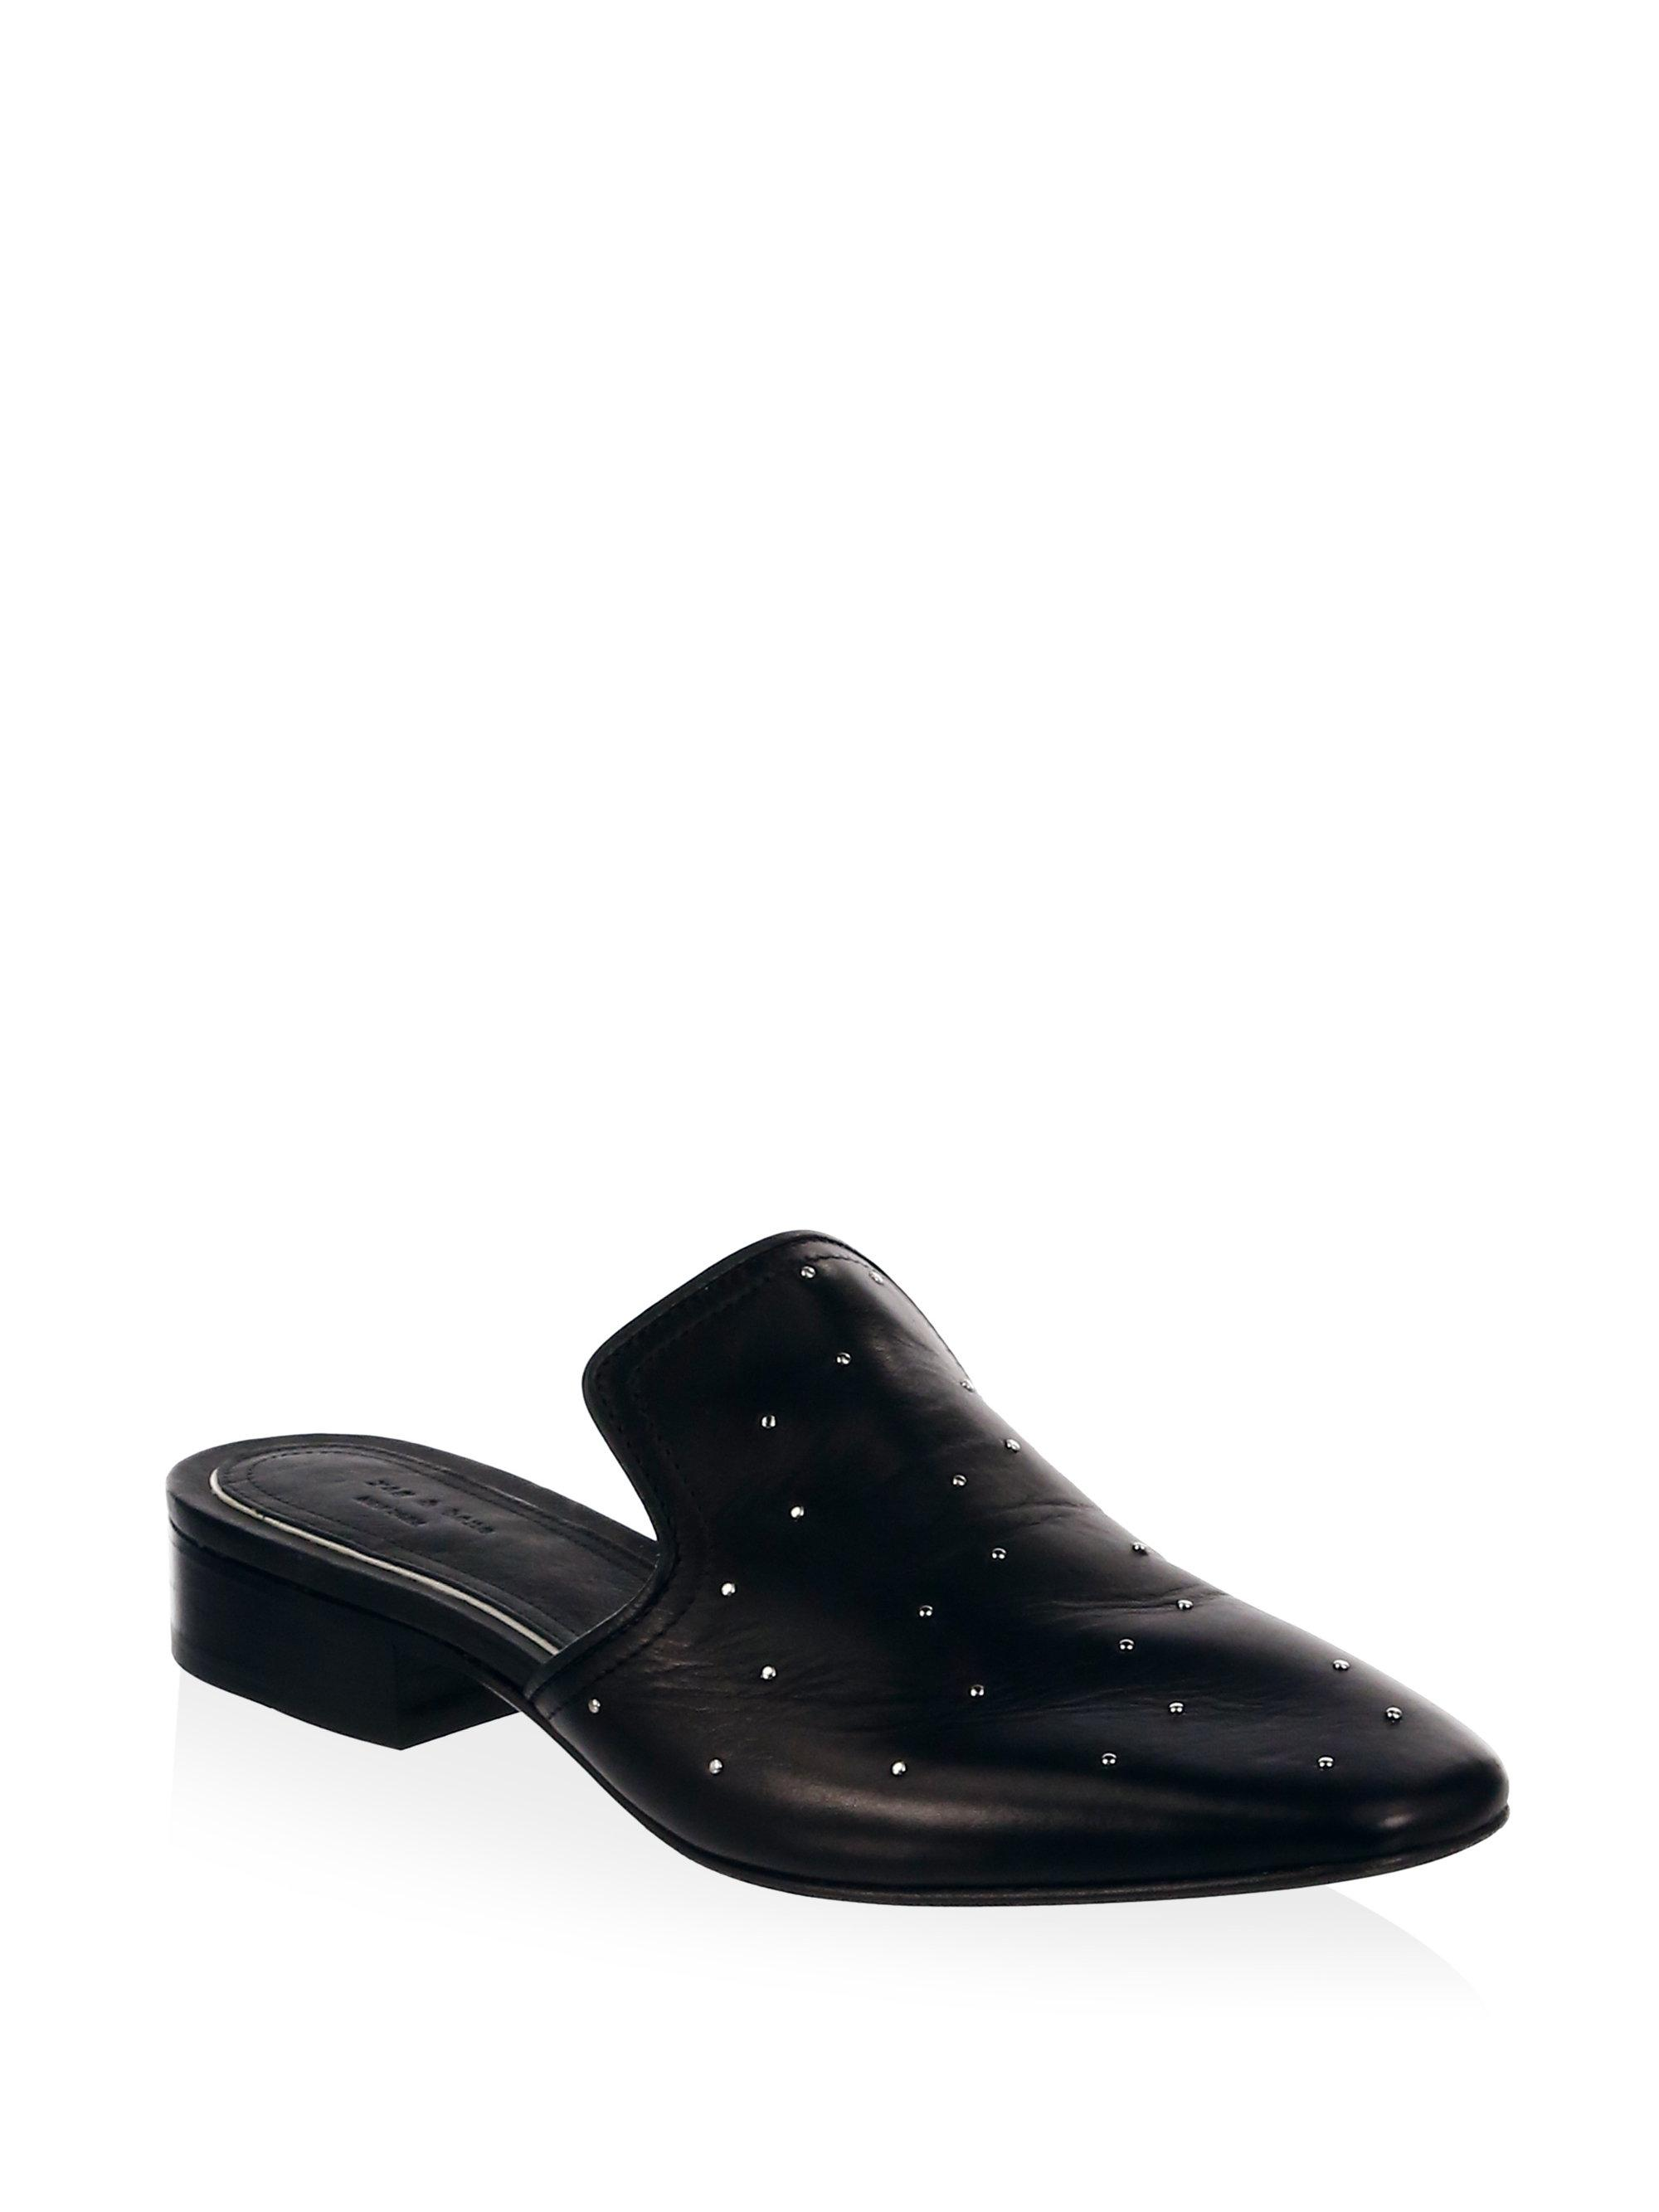 RAG&BONE Luis Studded Leather Loafers IHgHQ2J7Pw